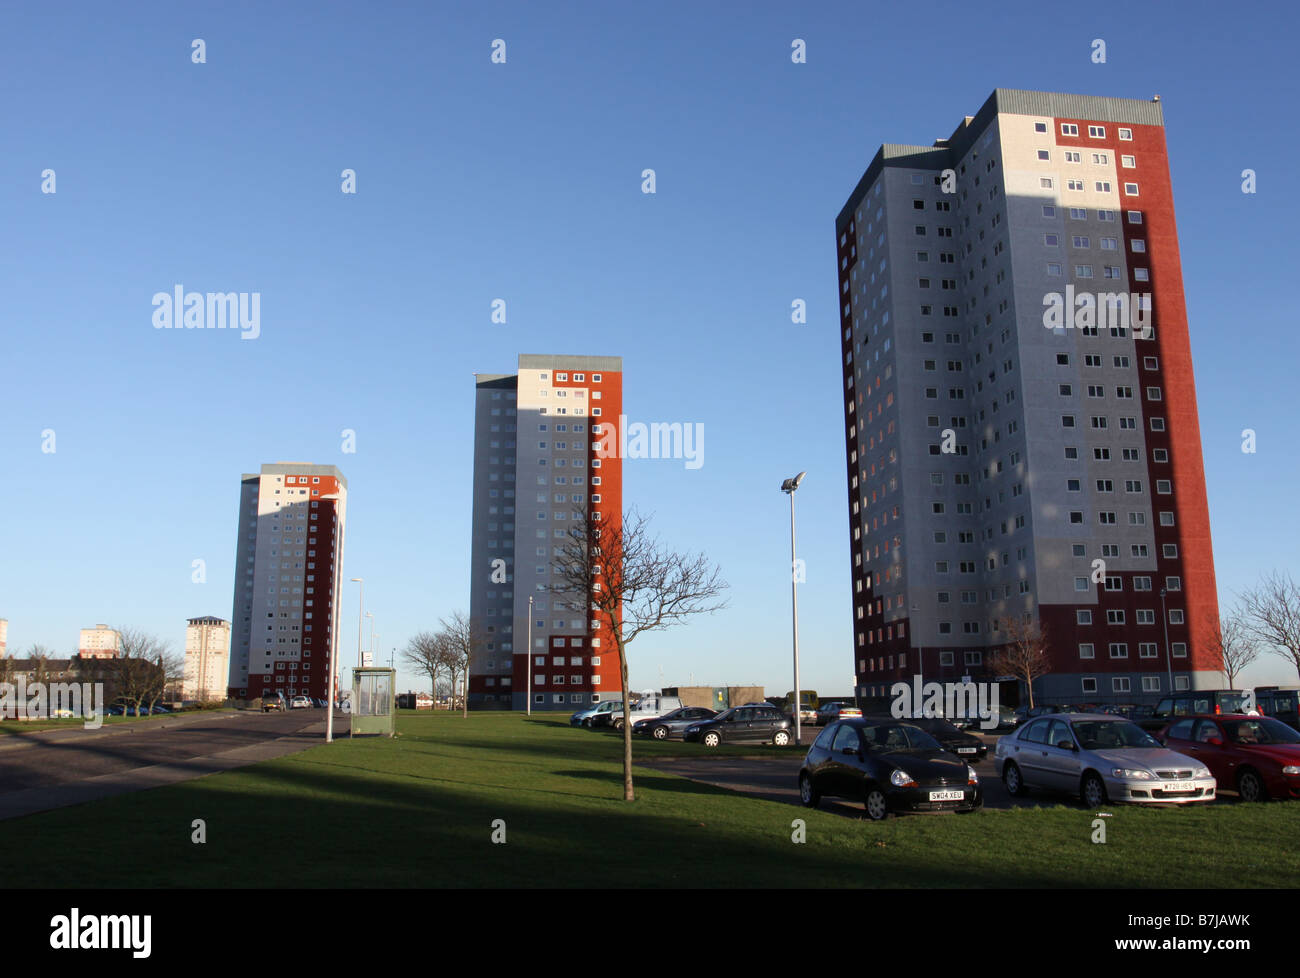 council housing residential tower blocks in Aberdeen, Scotland  January 2009 - Stock Image